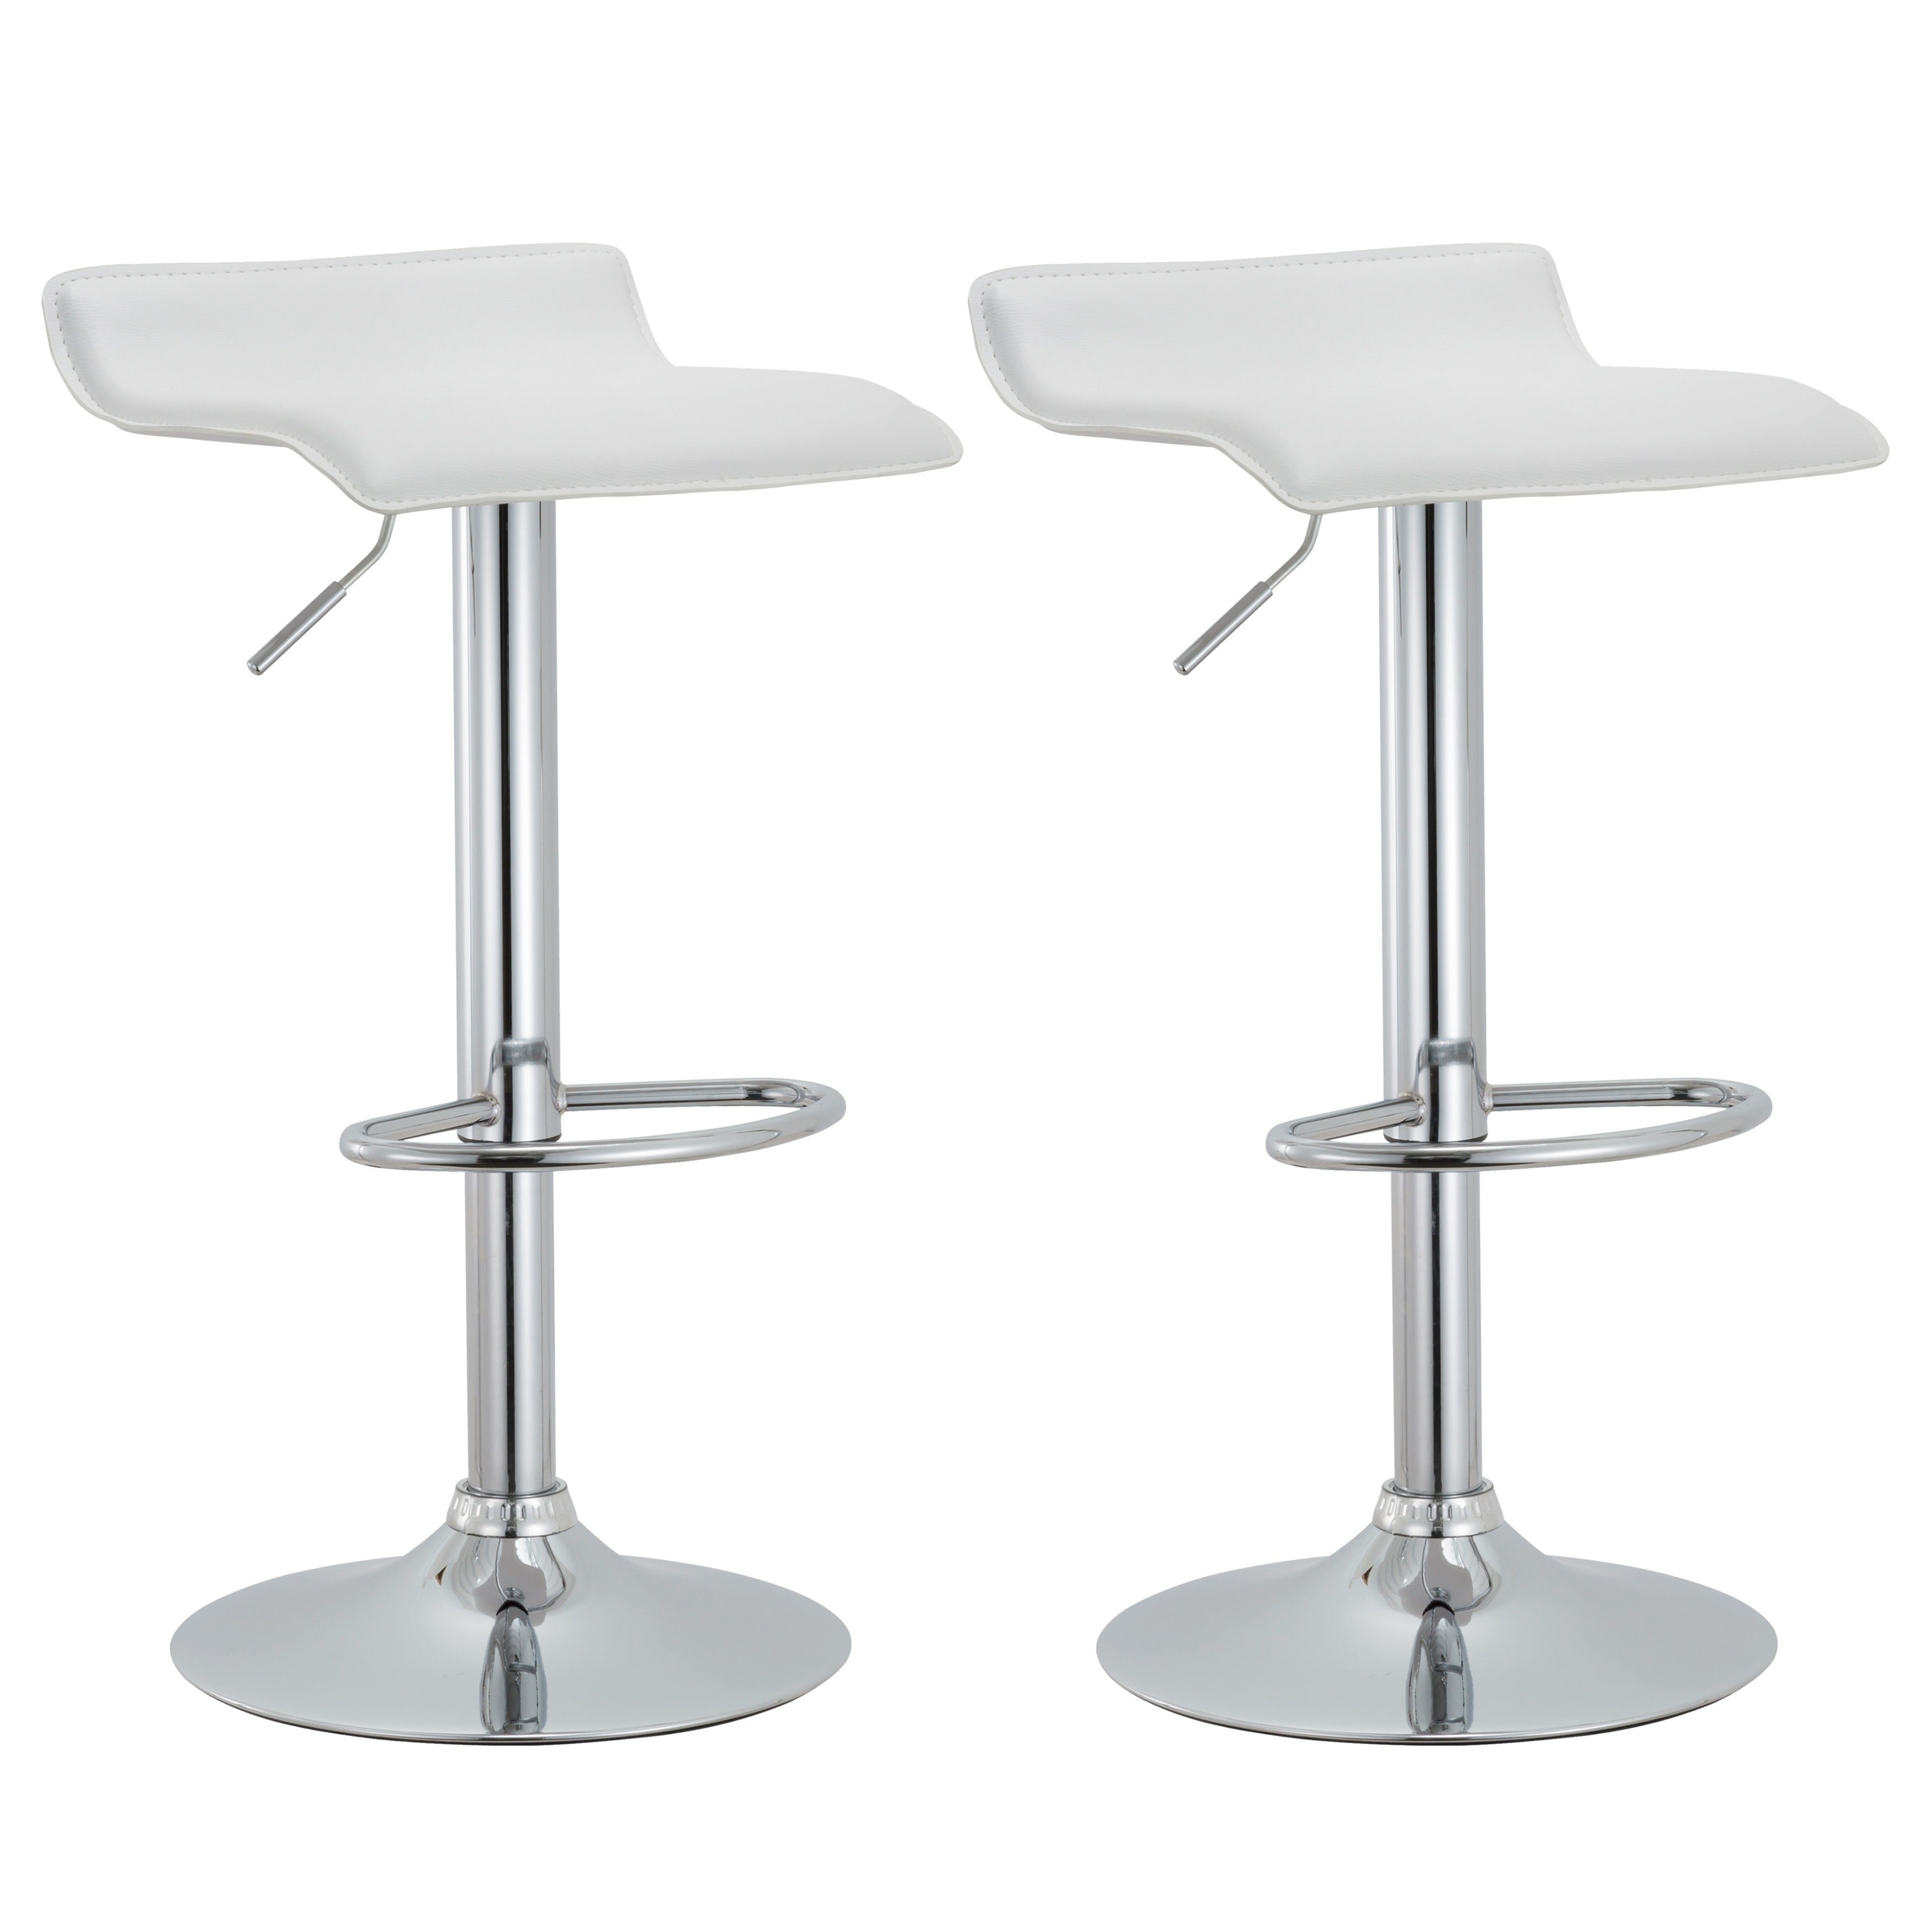 Charming Modern Adjustable Bar Stools (Set Of 2)   Free Shipping Today    Overstock.com   18194132